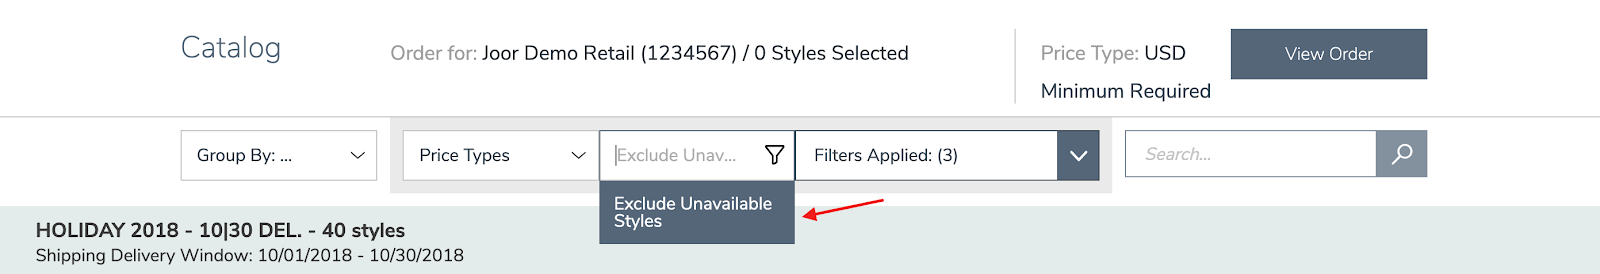 filters - exclude unavailable styles